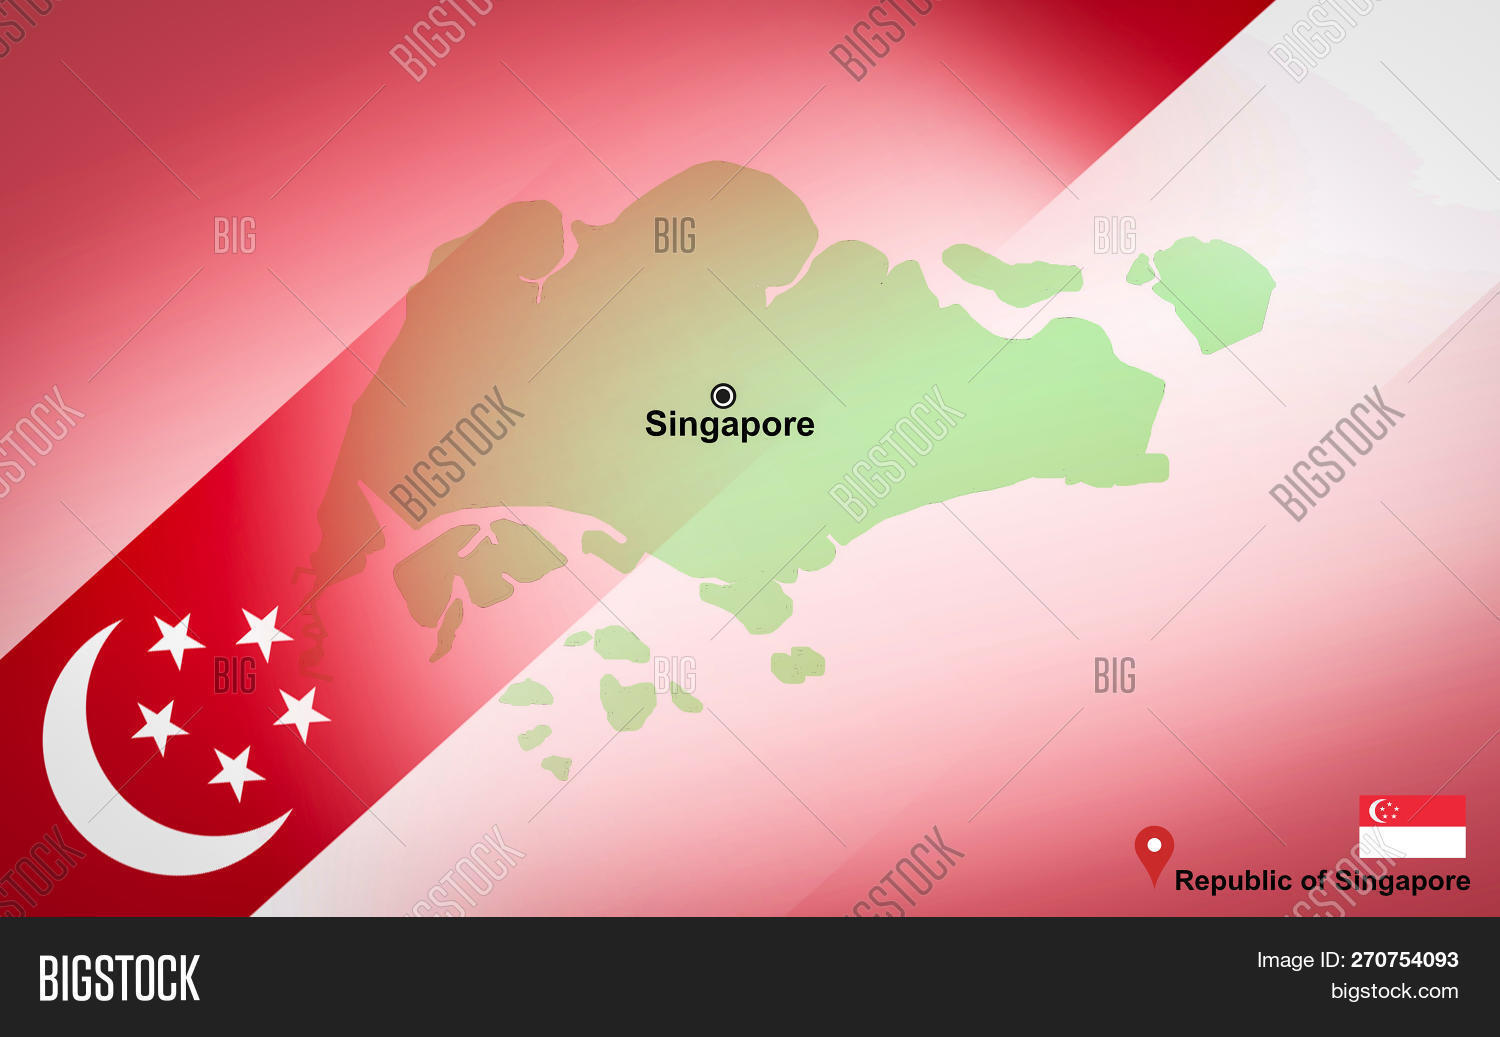 Singapore On The Map Of Asia.Singapore Map Location Image Photo Free Trial Bigstock